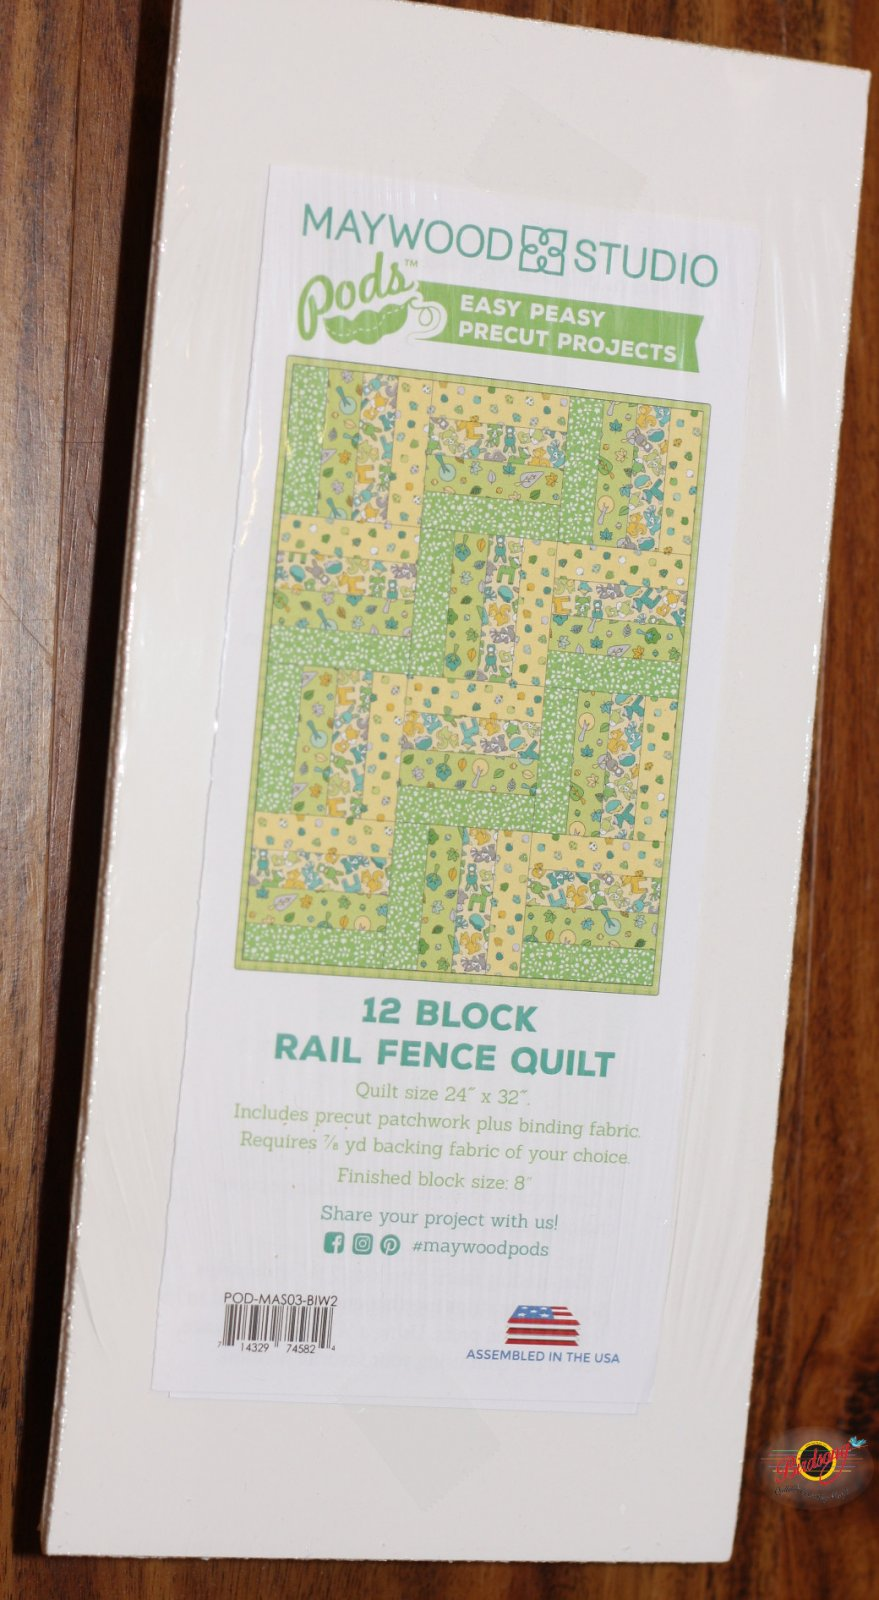 12 Block Rail Fence Quilt Pods